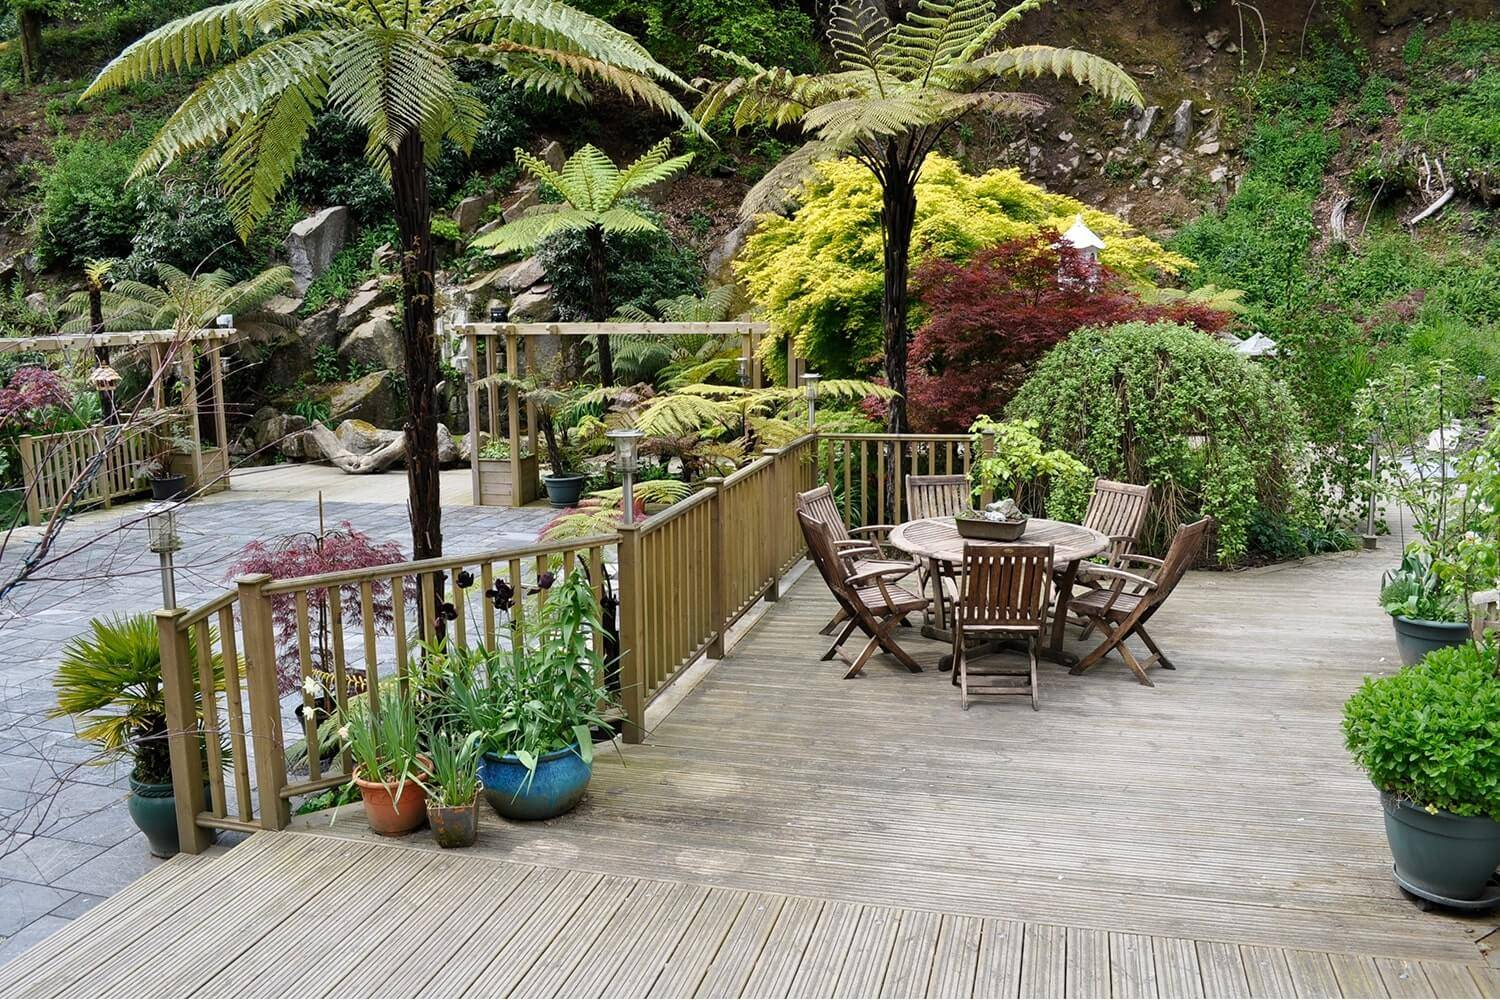 Outdoor Furniture on Decking